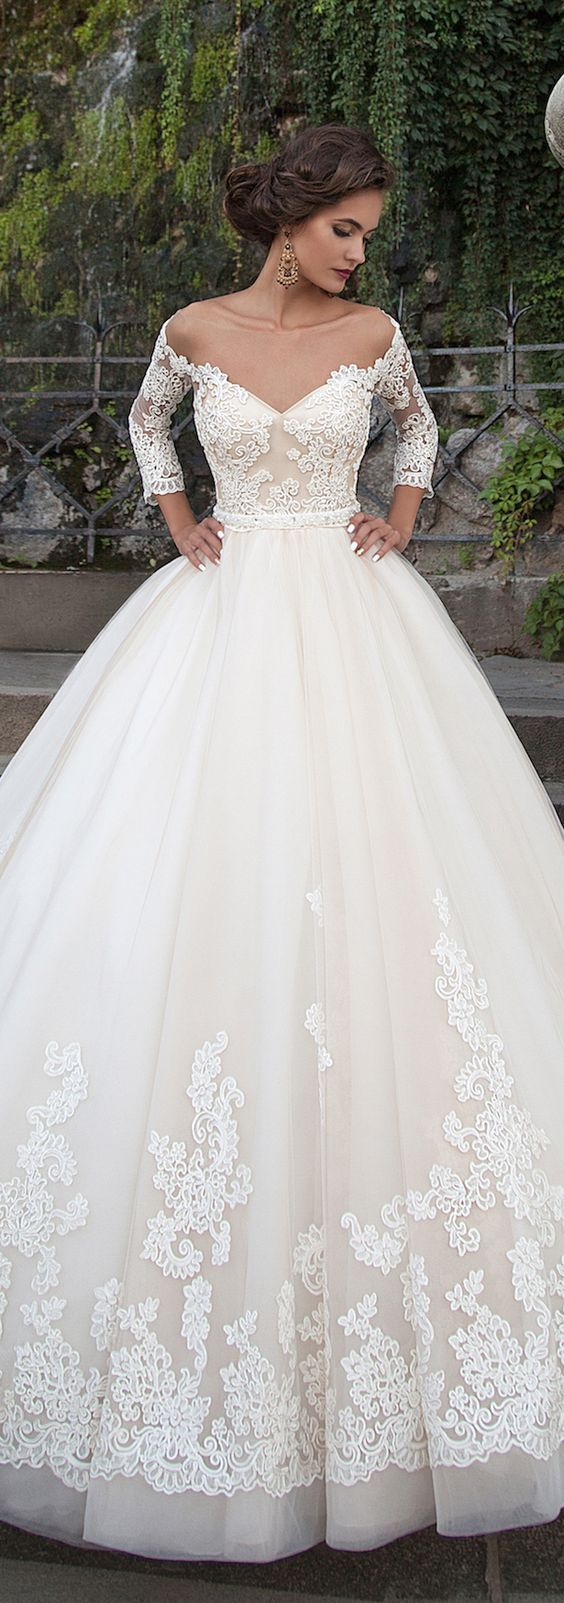 Wedding Dress Inspirations For You Futuro Vestidos De